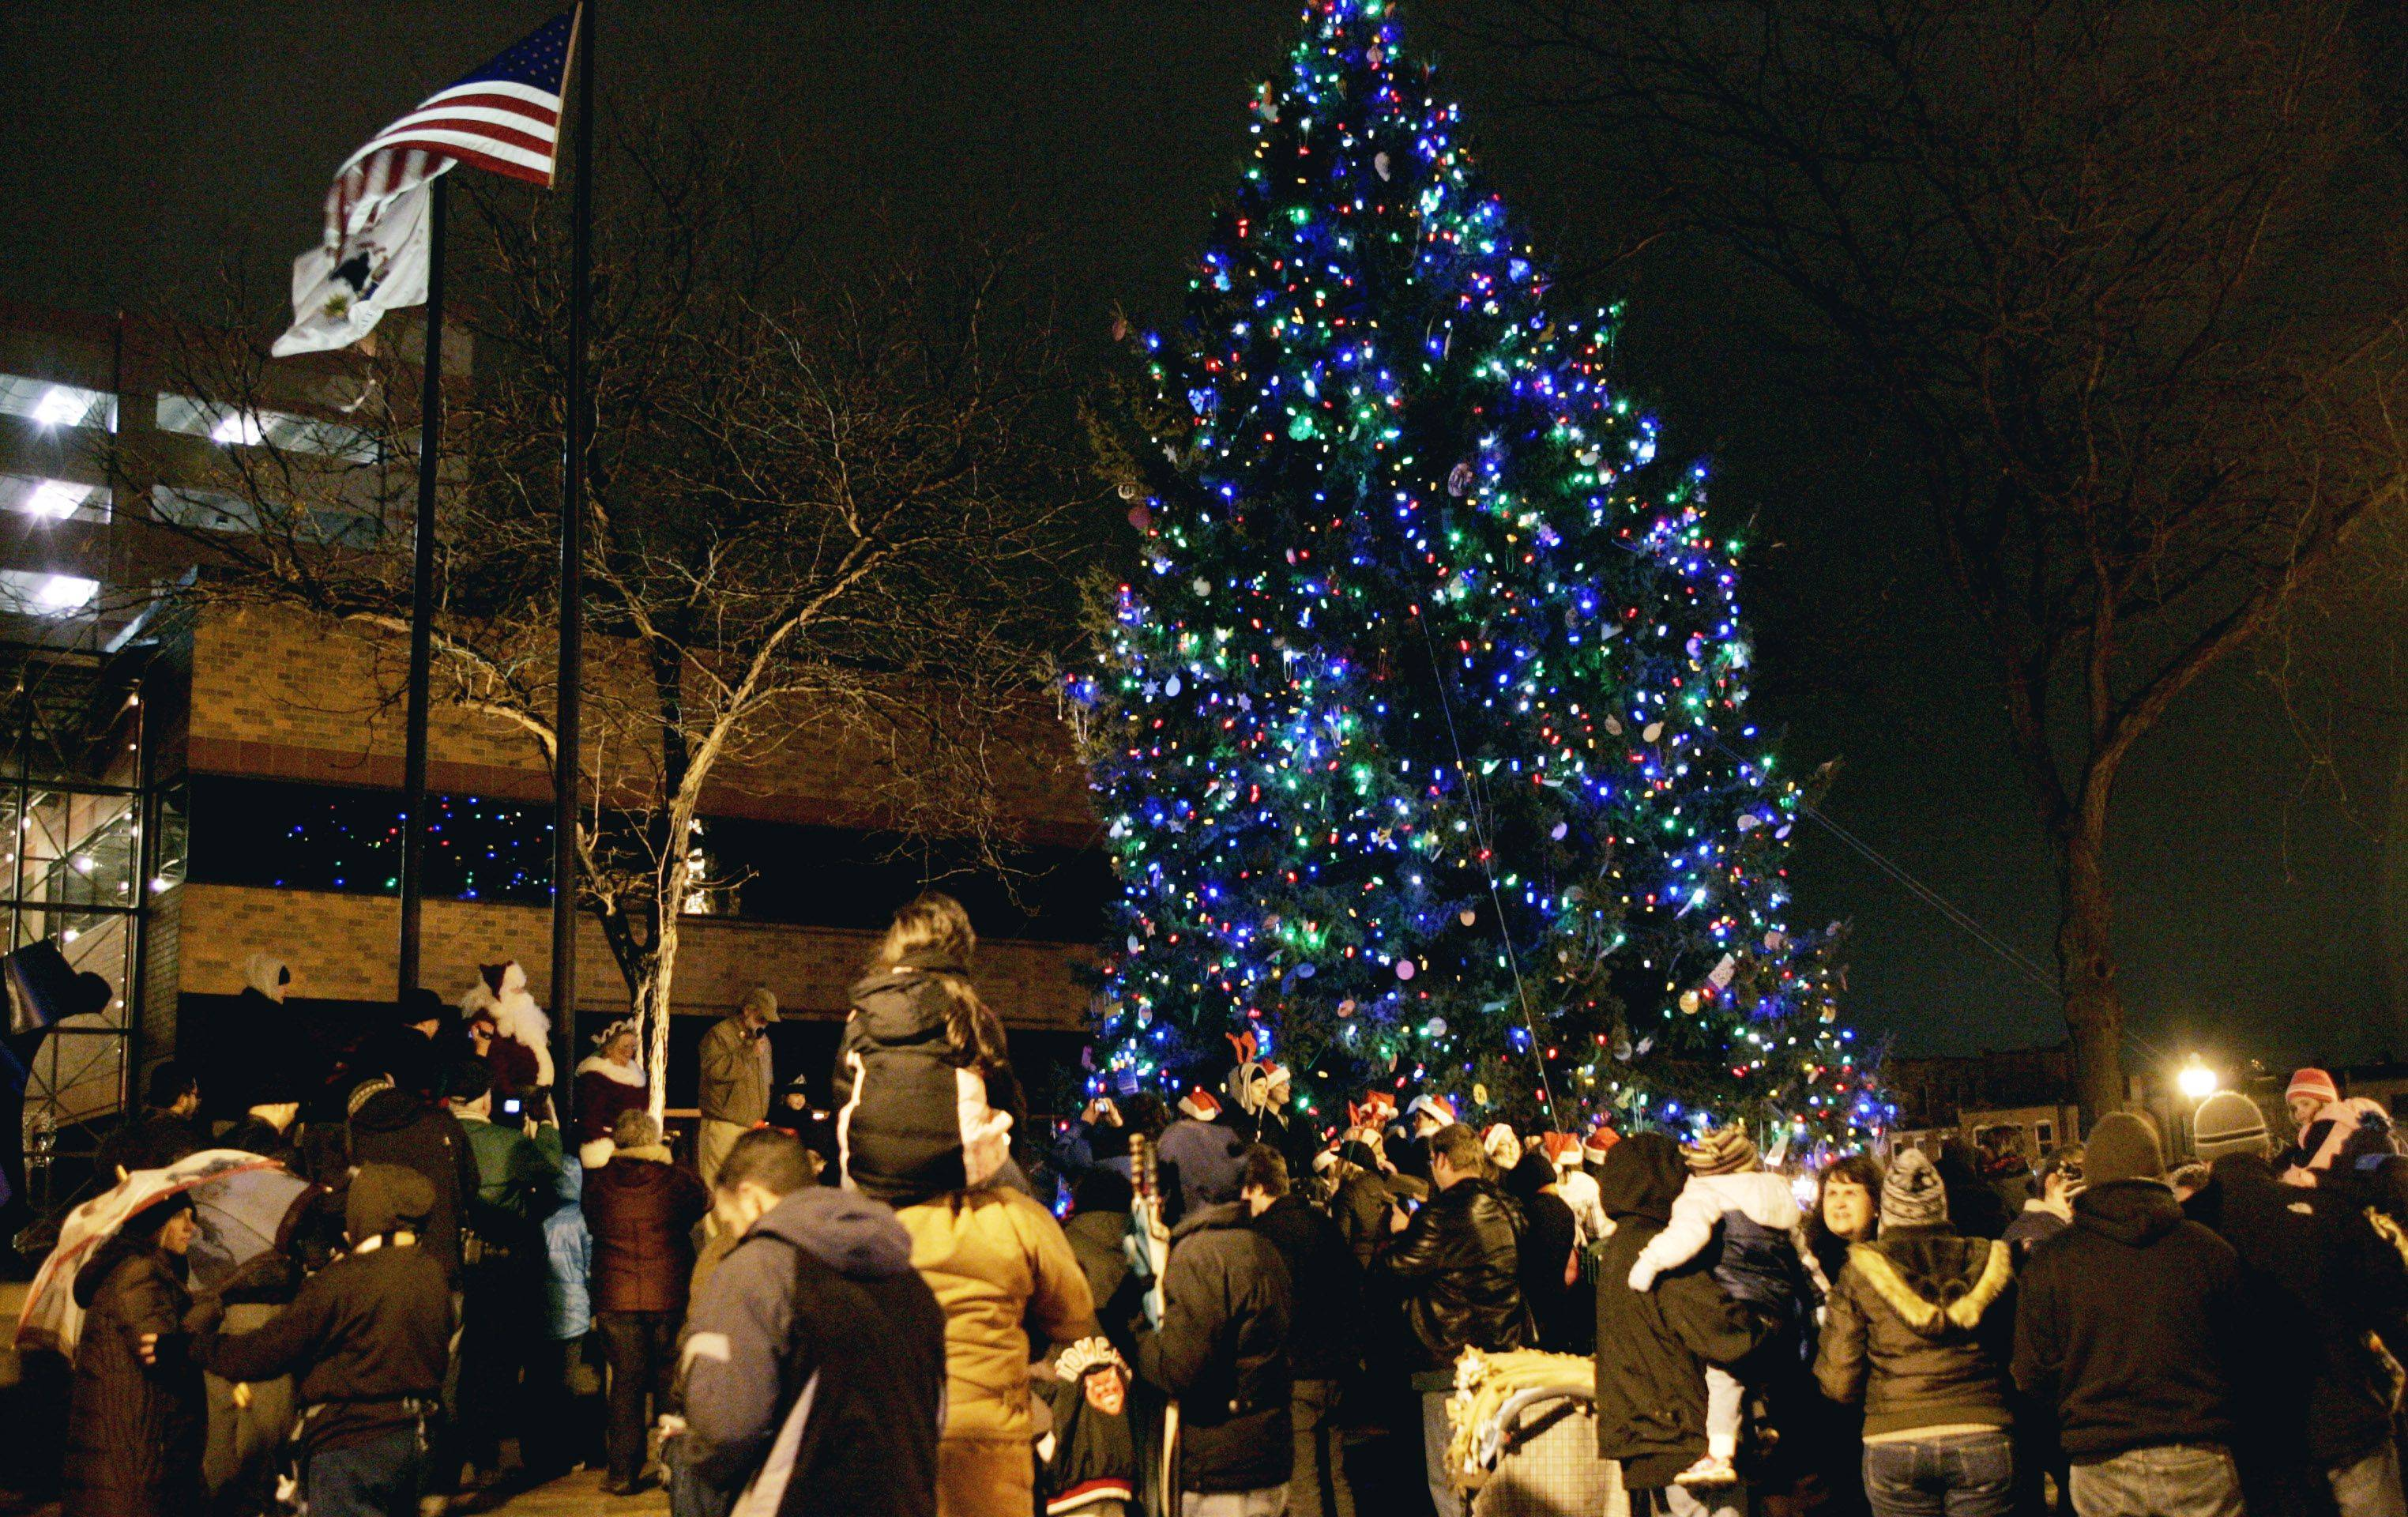 More than 60 residents joined with city of Aurora as the Christmas tree was lit Wednesday night at North Island Center in downtown Aurora.